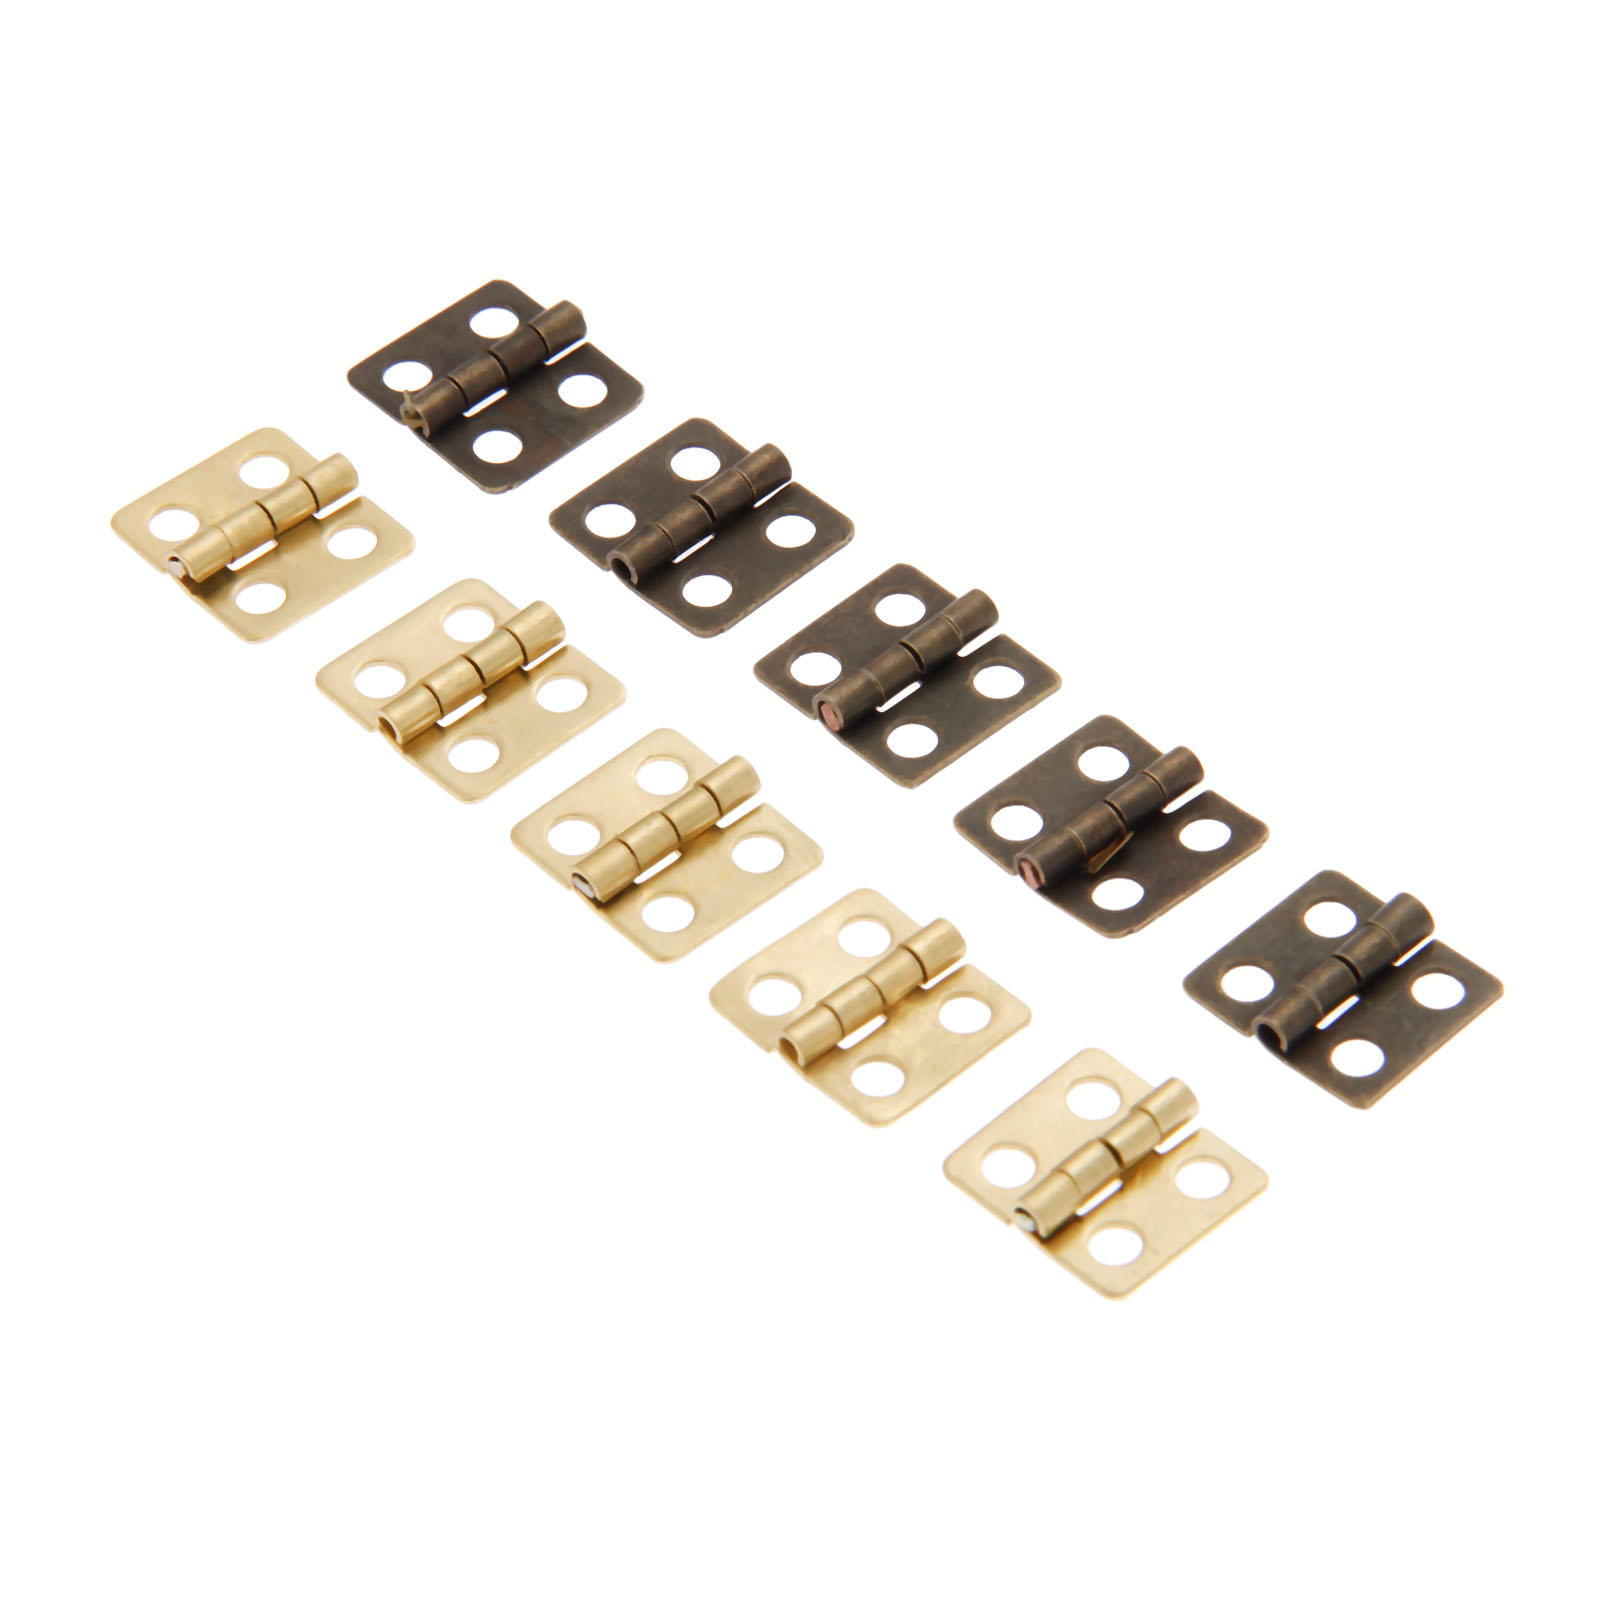 40Pcs Antique Mini Cabinet Drawer Door Furniture Butt Hinges 4 Holes Jewelry Boxes Decorative Hinges Furniture Hardware 13 12mm in Cabinet Hinges from Home Improvement